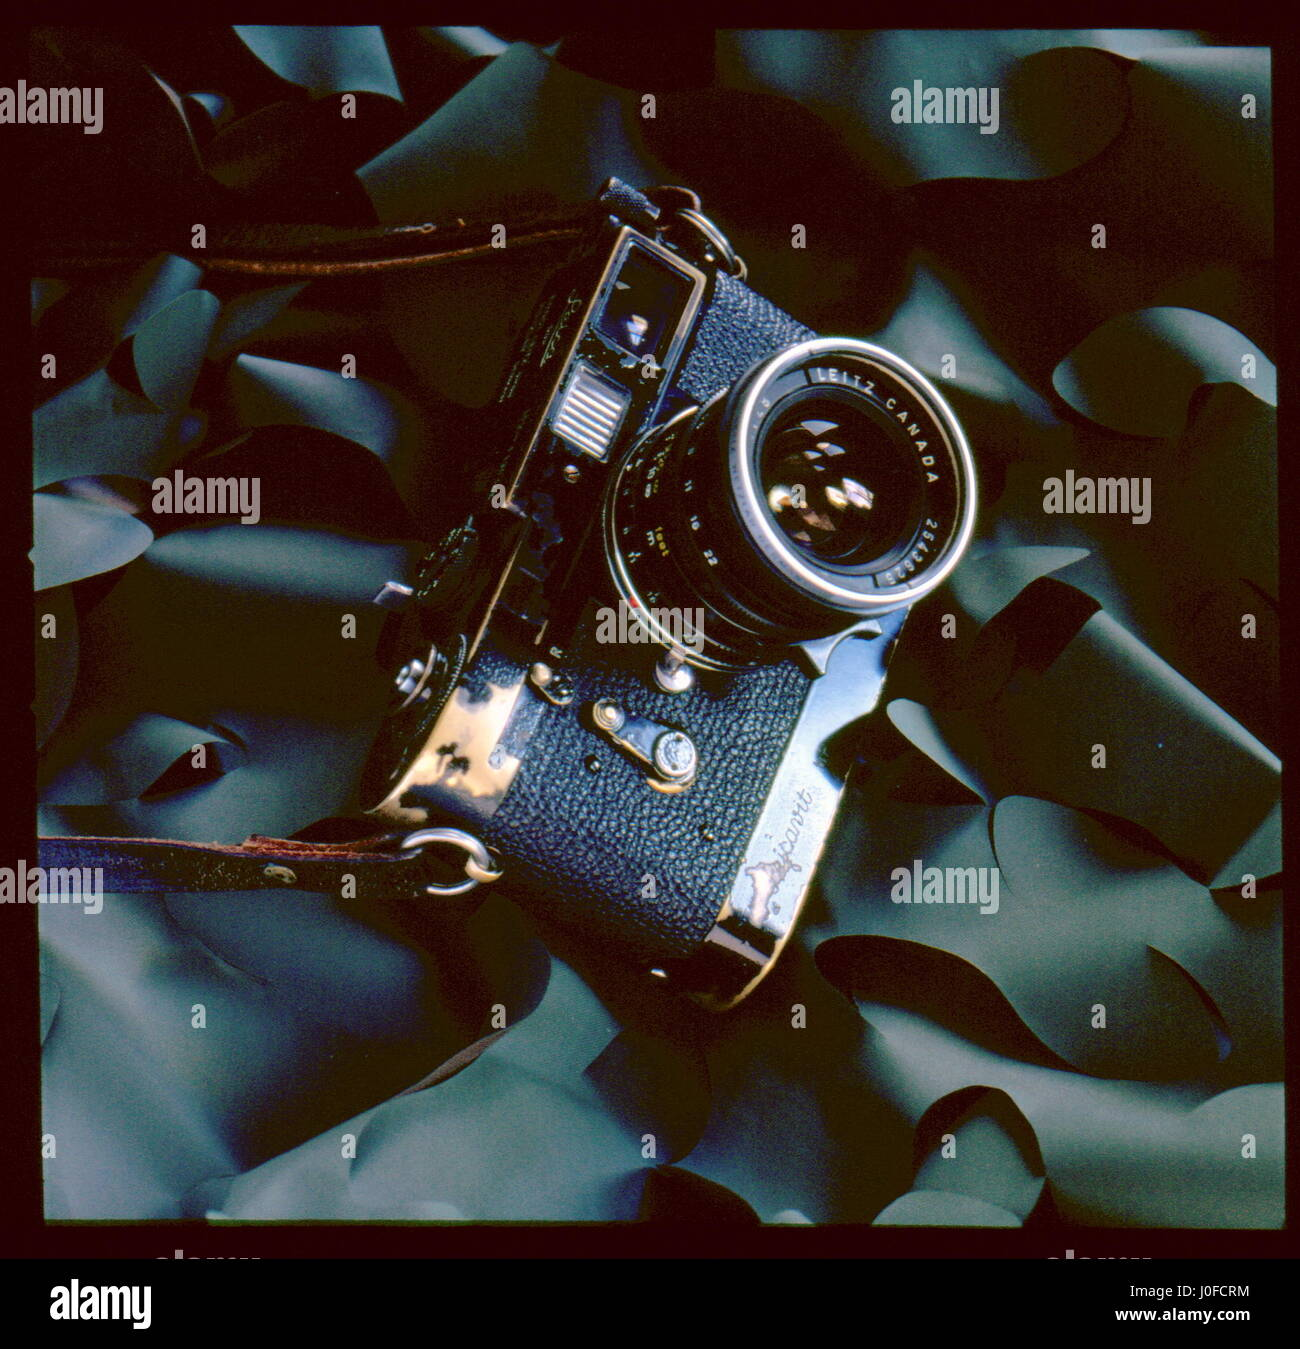 AJAXNETPHOTO. UNITED KINGDOM. -  CLASSIC LEICA CAMERA - BLACK PAINT 1950S LEICA M2 FITTED WITH LEICAVIT FILM WINDER. - Stock Image